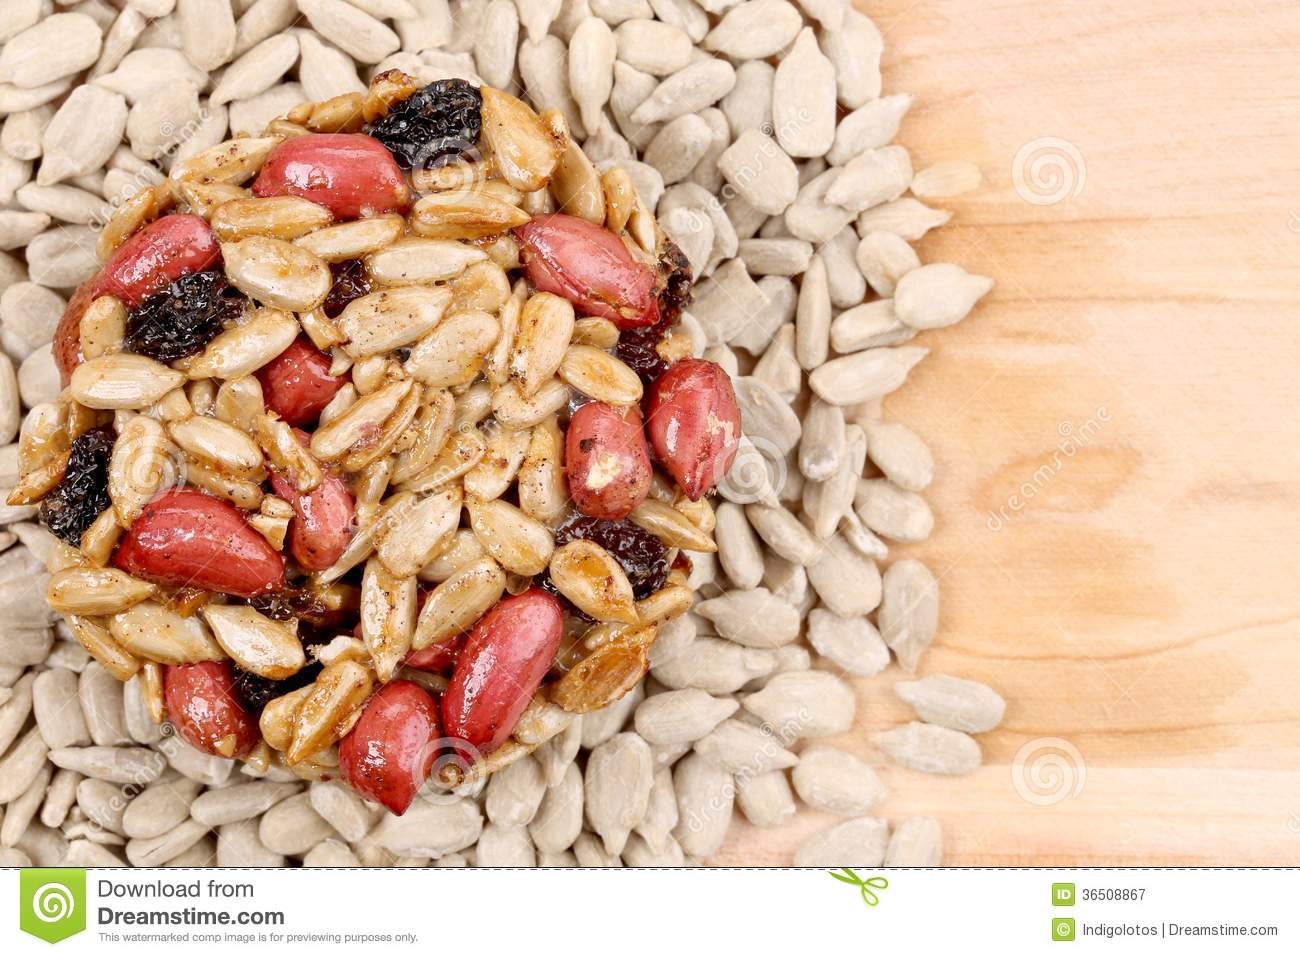 Round candied seeds and nuts.